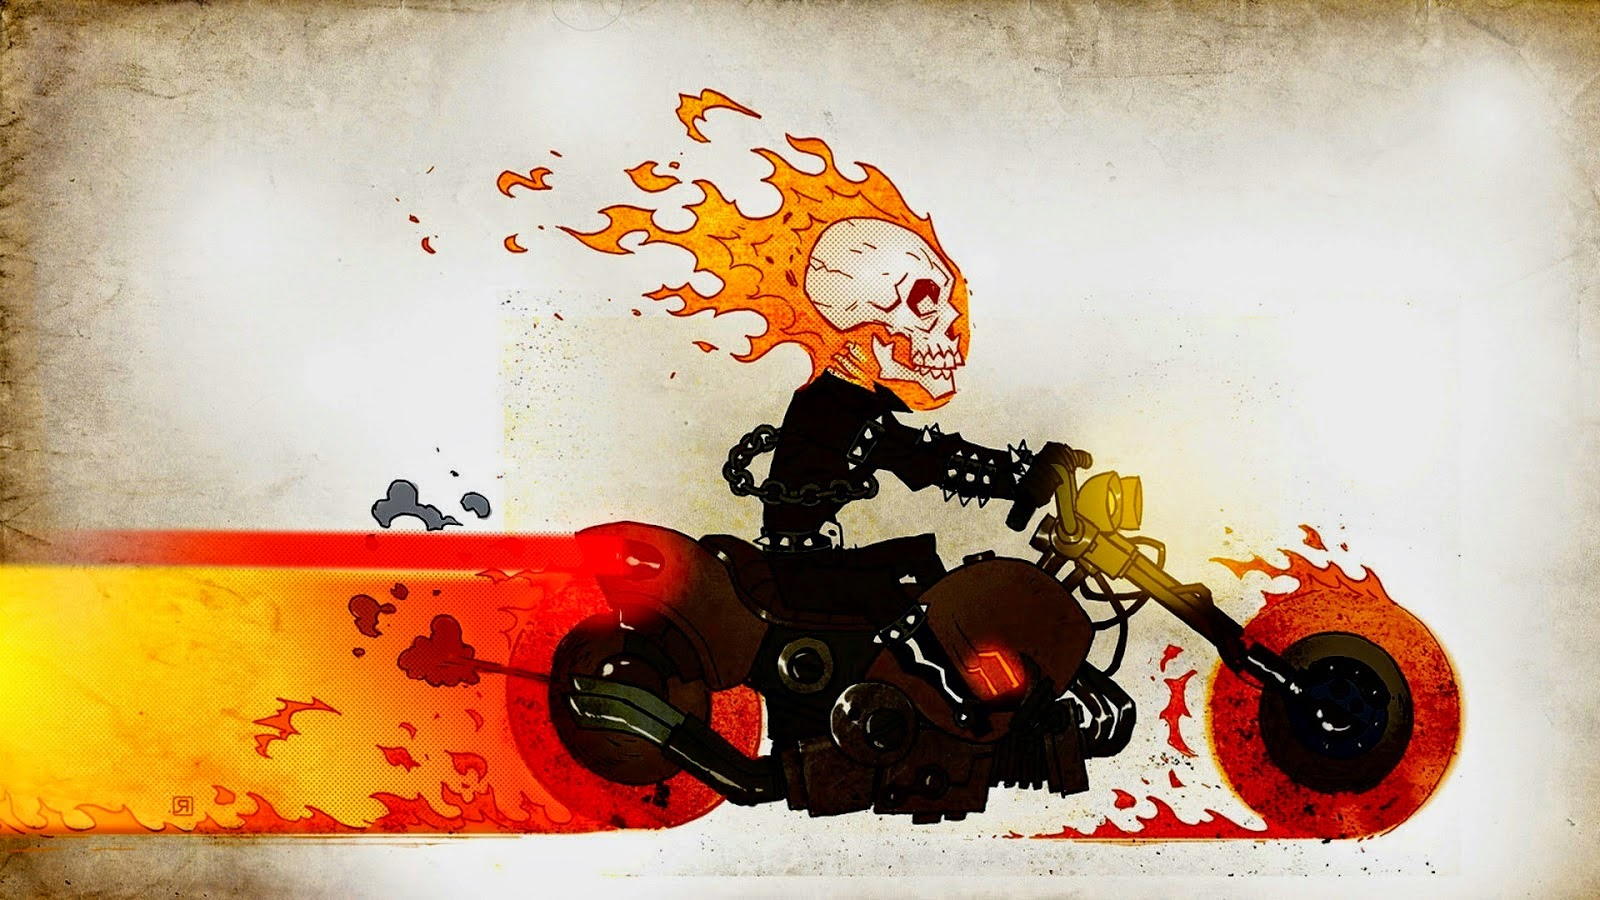 ghost rider hd wallpapers ghost rider hd wallpapers ghost rider hd 1600x900